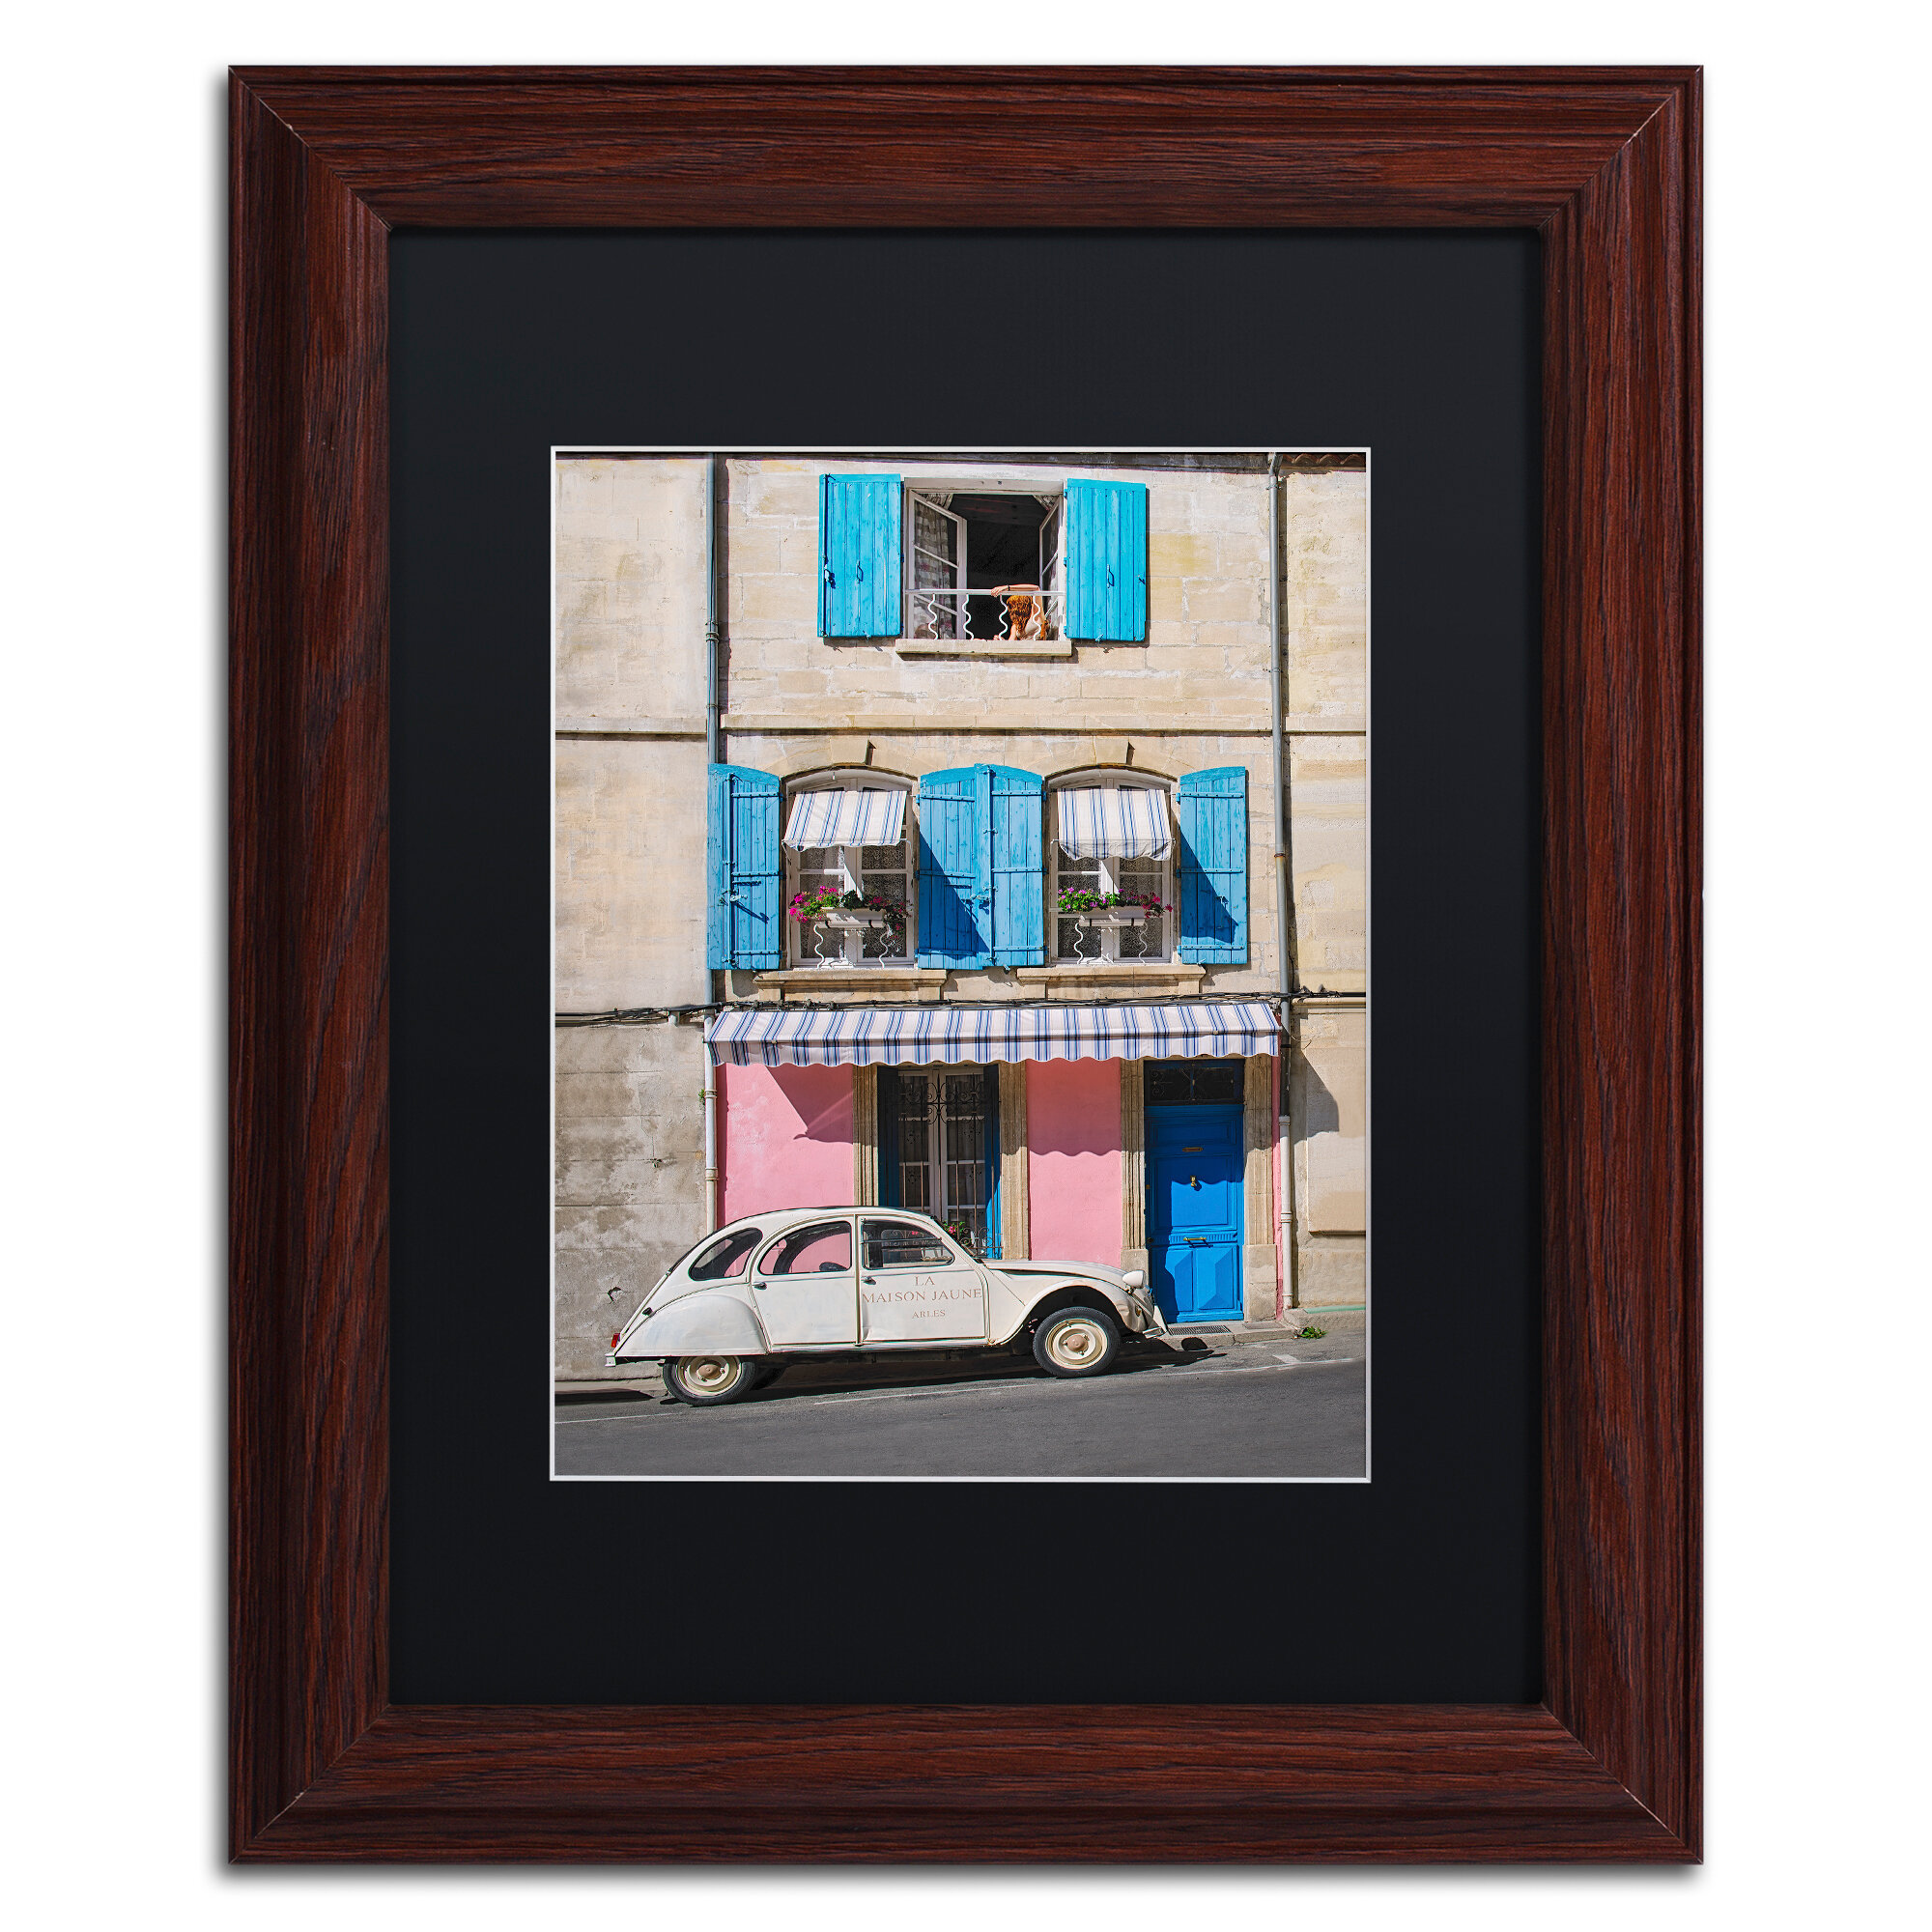 Trademark Art Woman At The Window By Michael Blanchette Framed Photographic Print Wayfair